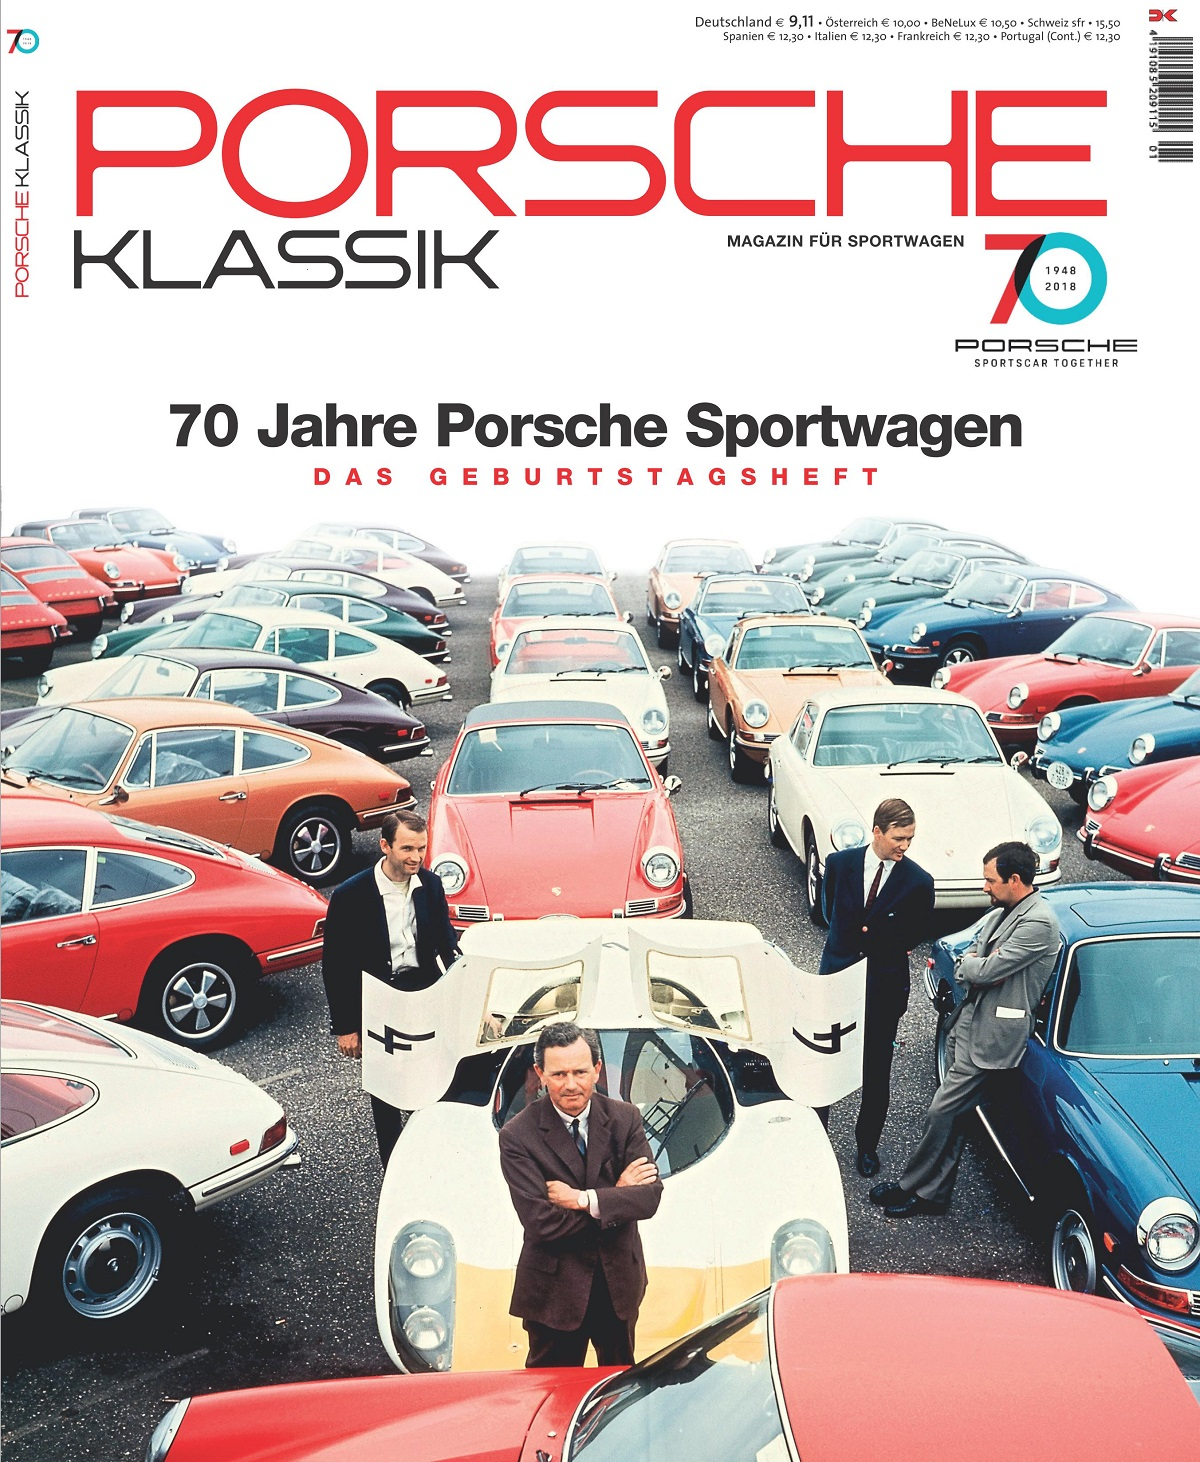 porsche klassik special 70 jahre porsche delius klasing. Black Bedroom Furniture Sets. Home Design Ideas